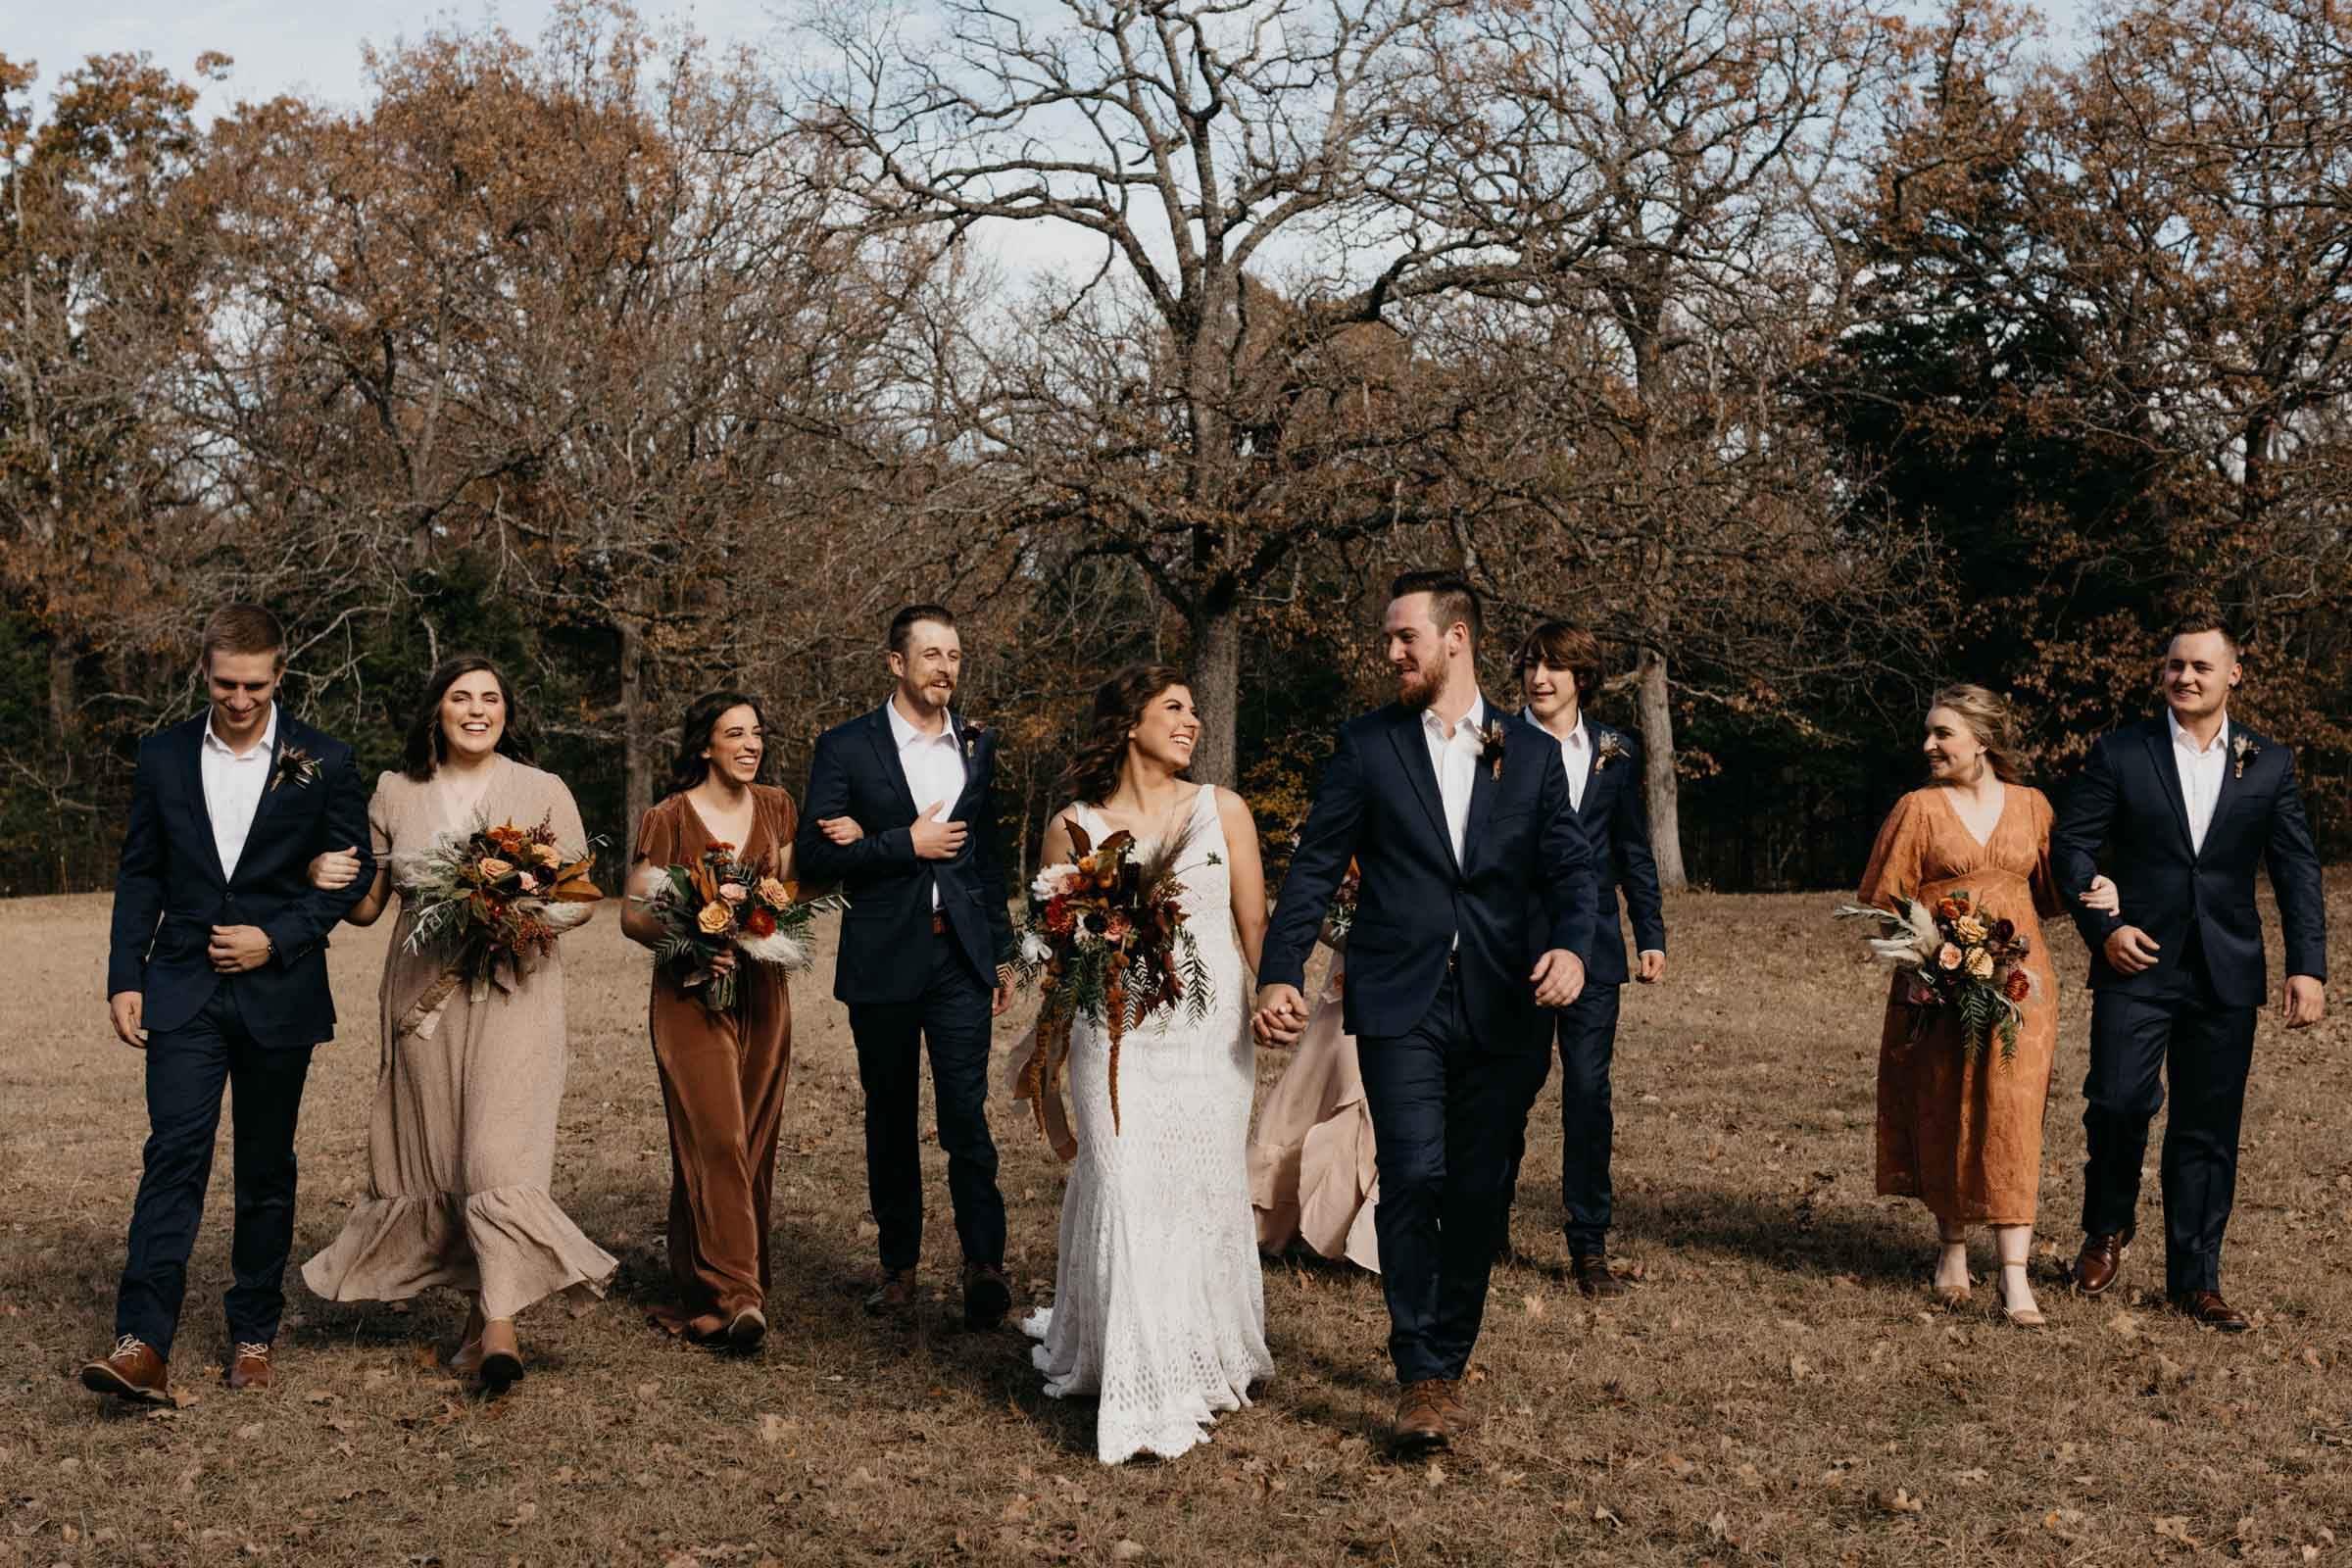 East texas bridal party holding their florals and walking behind bride and groom